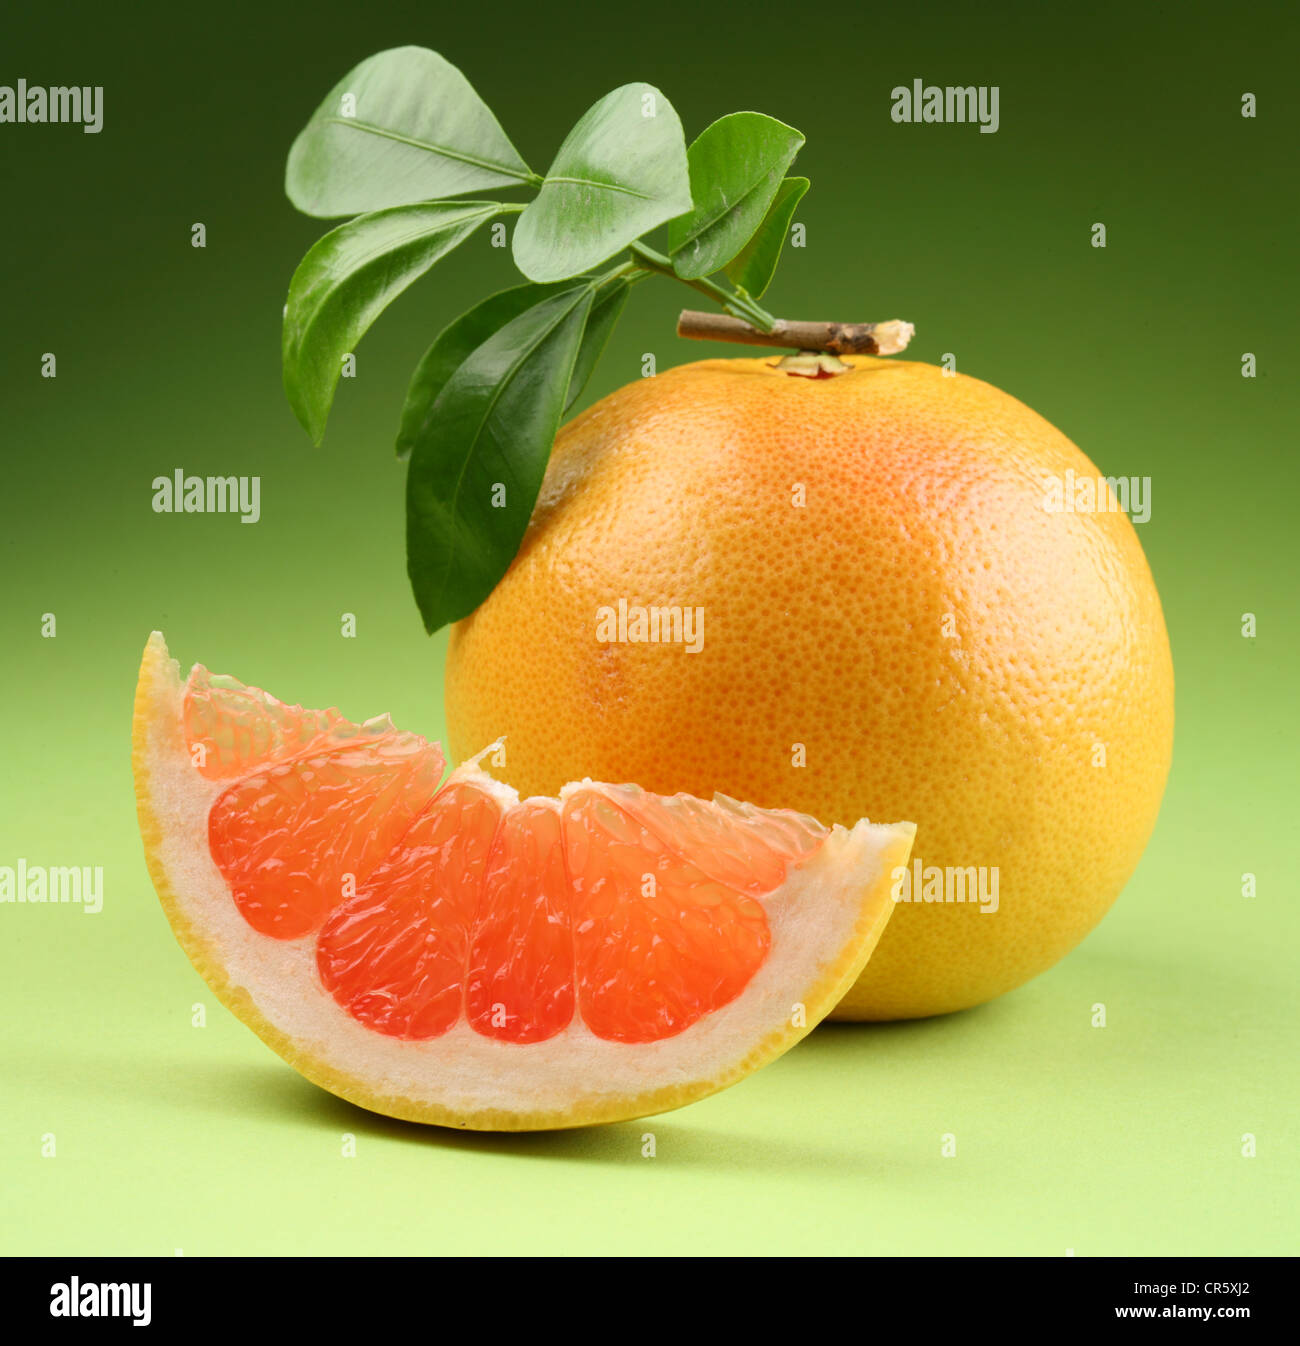 grapefruit with leaves on a green background - Stock Image